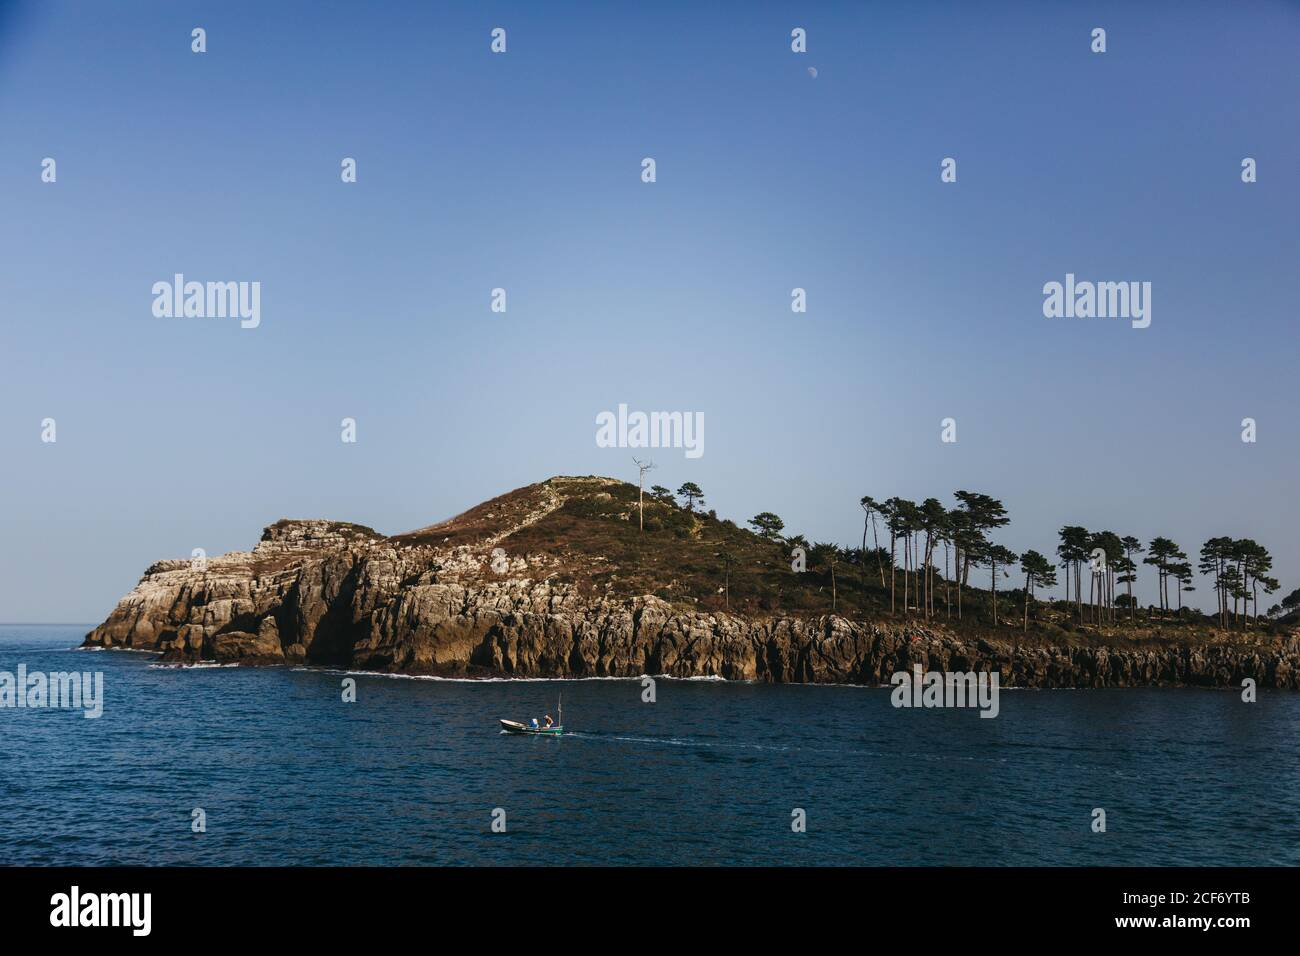 Lonely fishing boat moving on bay with tranquil water against rocky shore with tall evergreen trees at foot of hill under clear blue sky in Spain Stock Photo